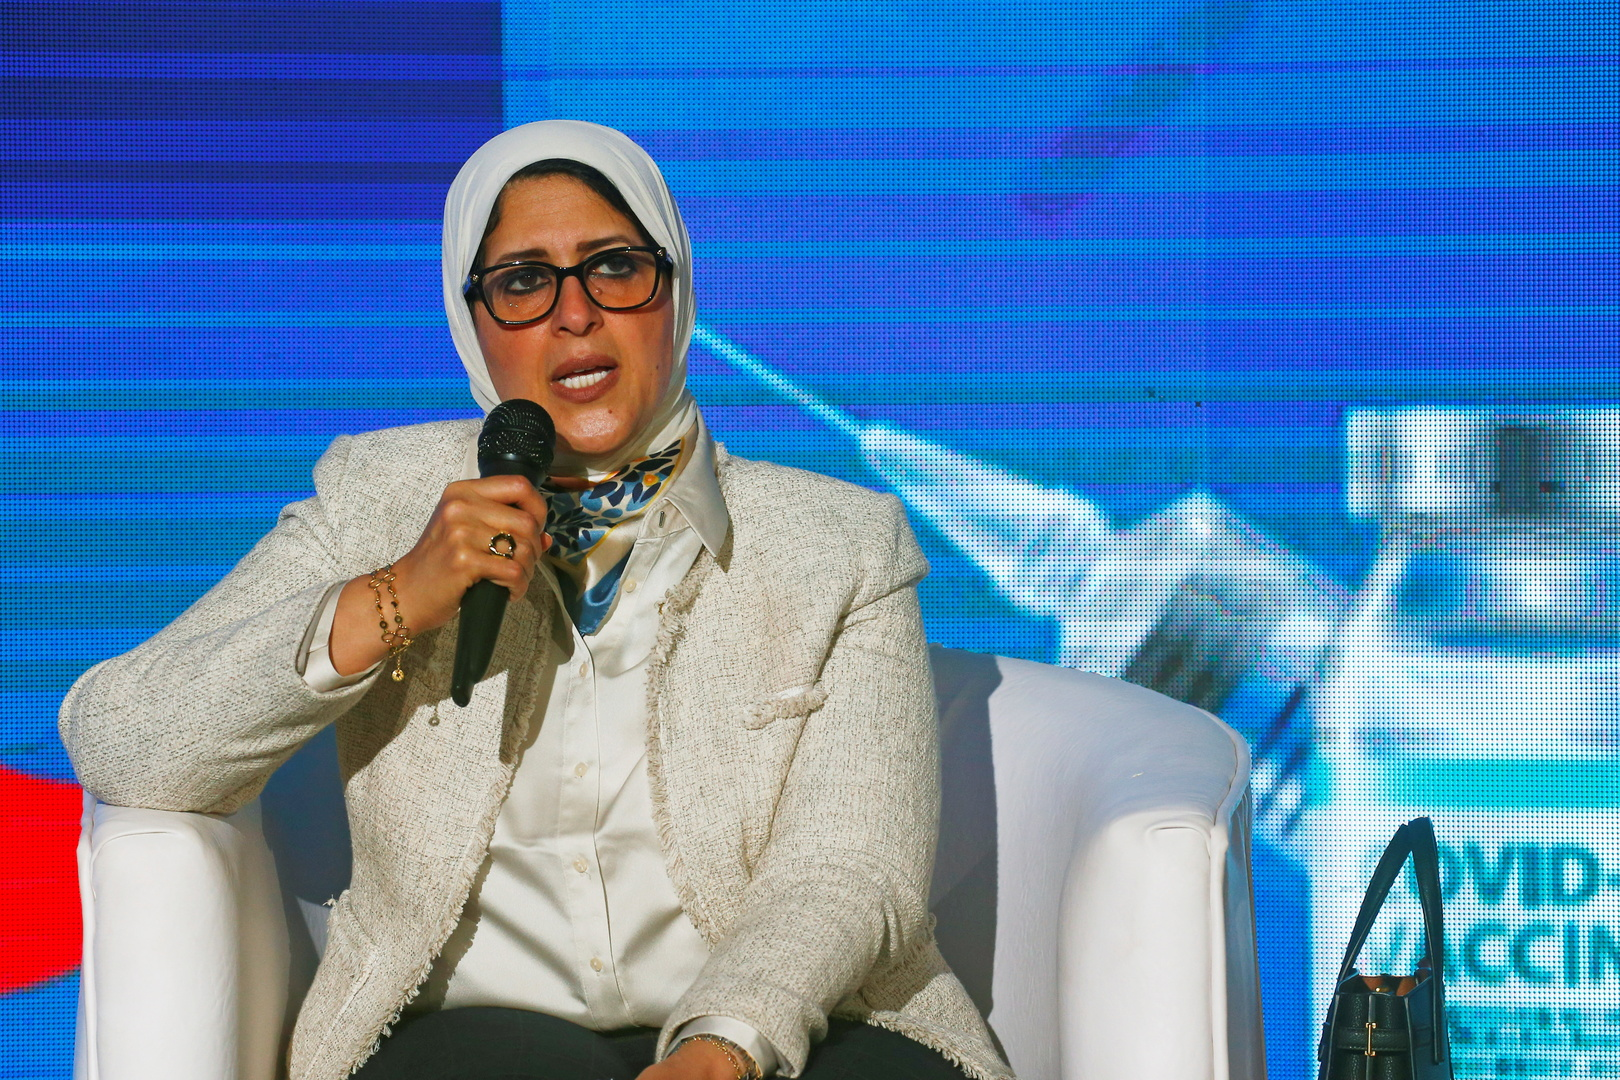 The Egyptian Minister of Health reveals the price of the Corona vaccine and specifies two groups that will be vaccinated for free